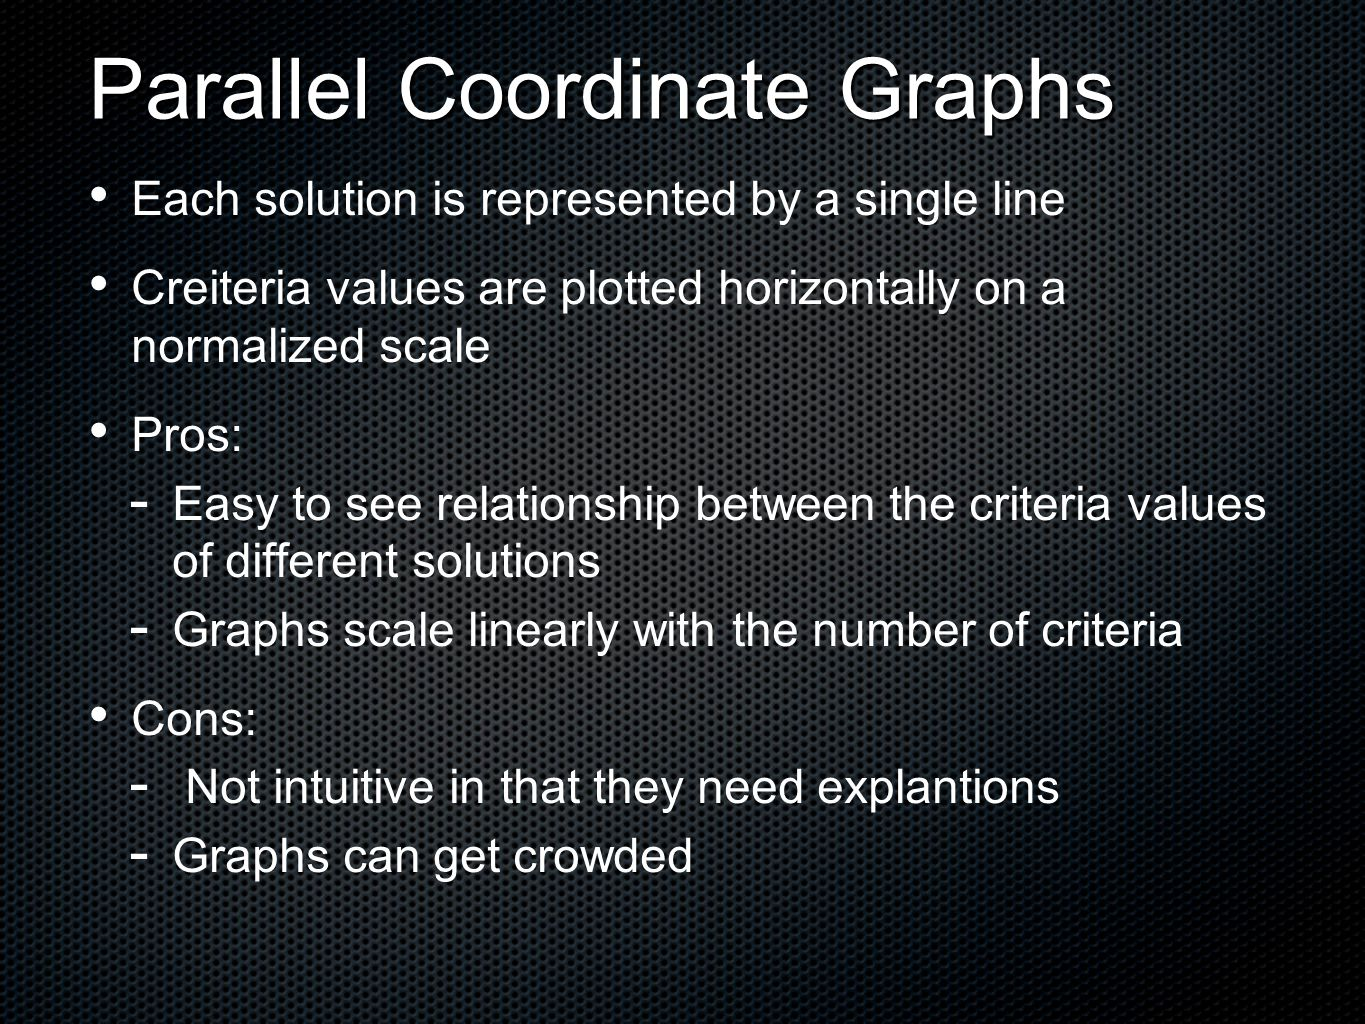 Each solution is represented by a single line Creiteria values are plotted horizontally on a normalized scale Pros:   Easy to see relationship between the criteria values of different solutions   Graphs scale linearly with the number of criteria Cons:   Not intuitive in that they need explantions   Graphs can get crowded